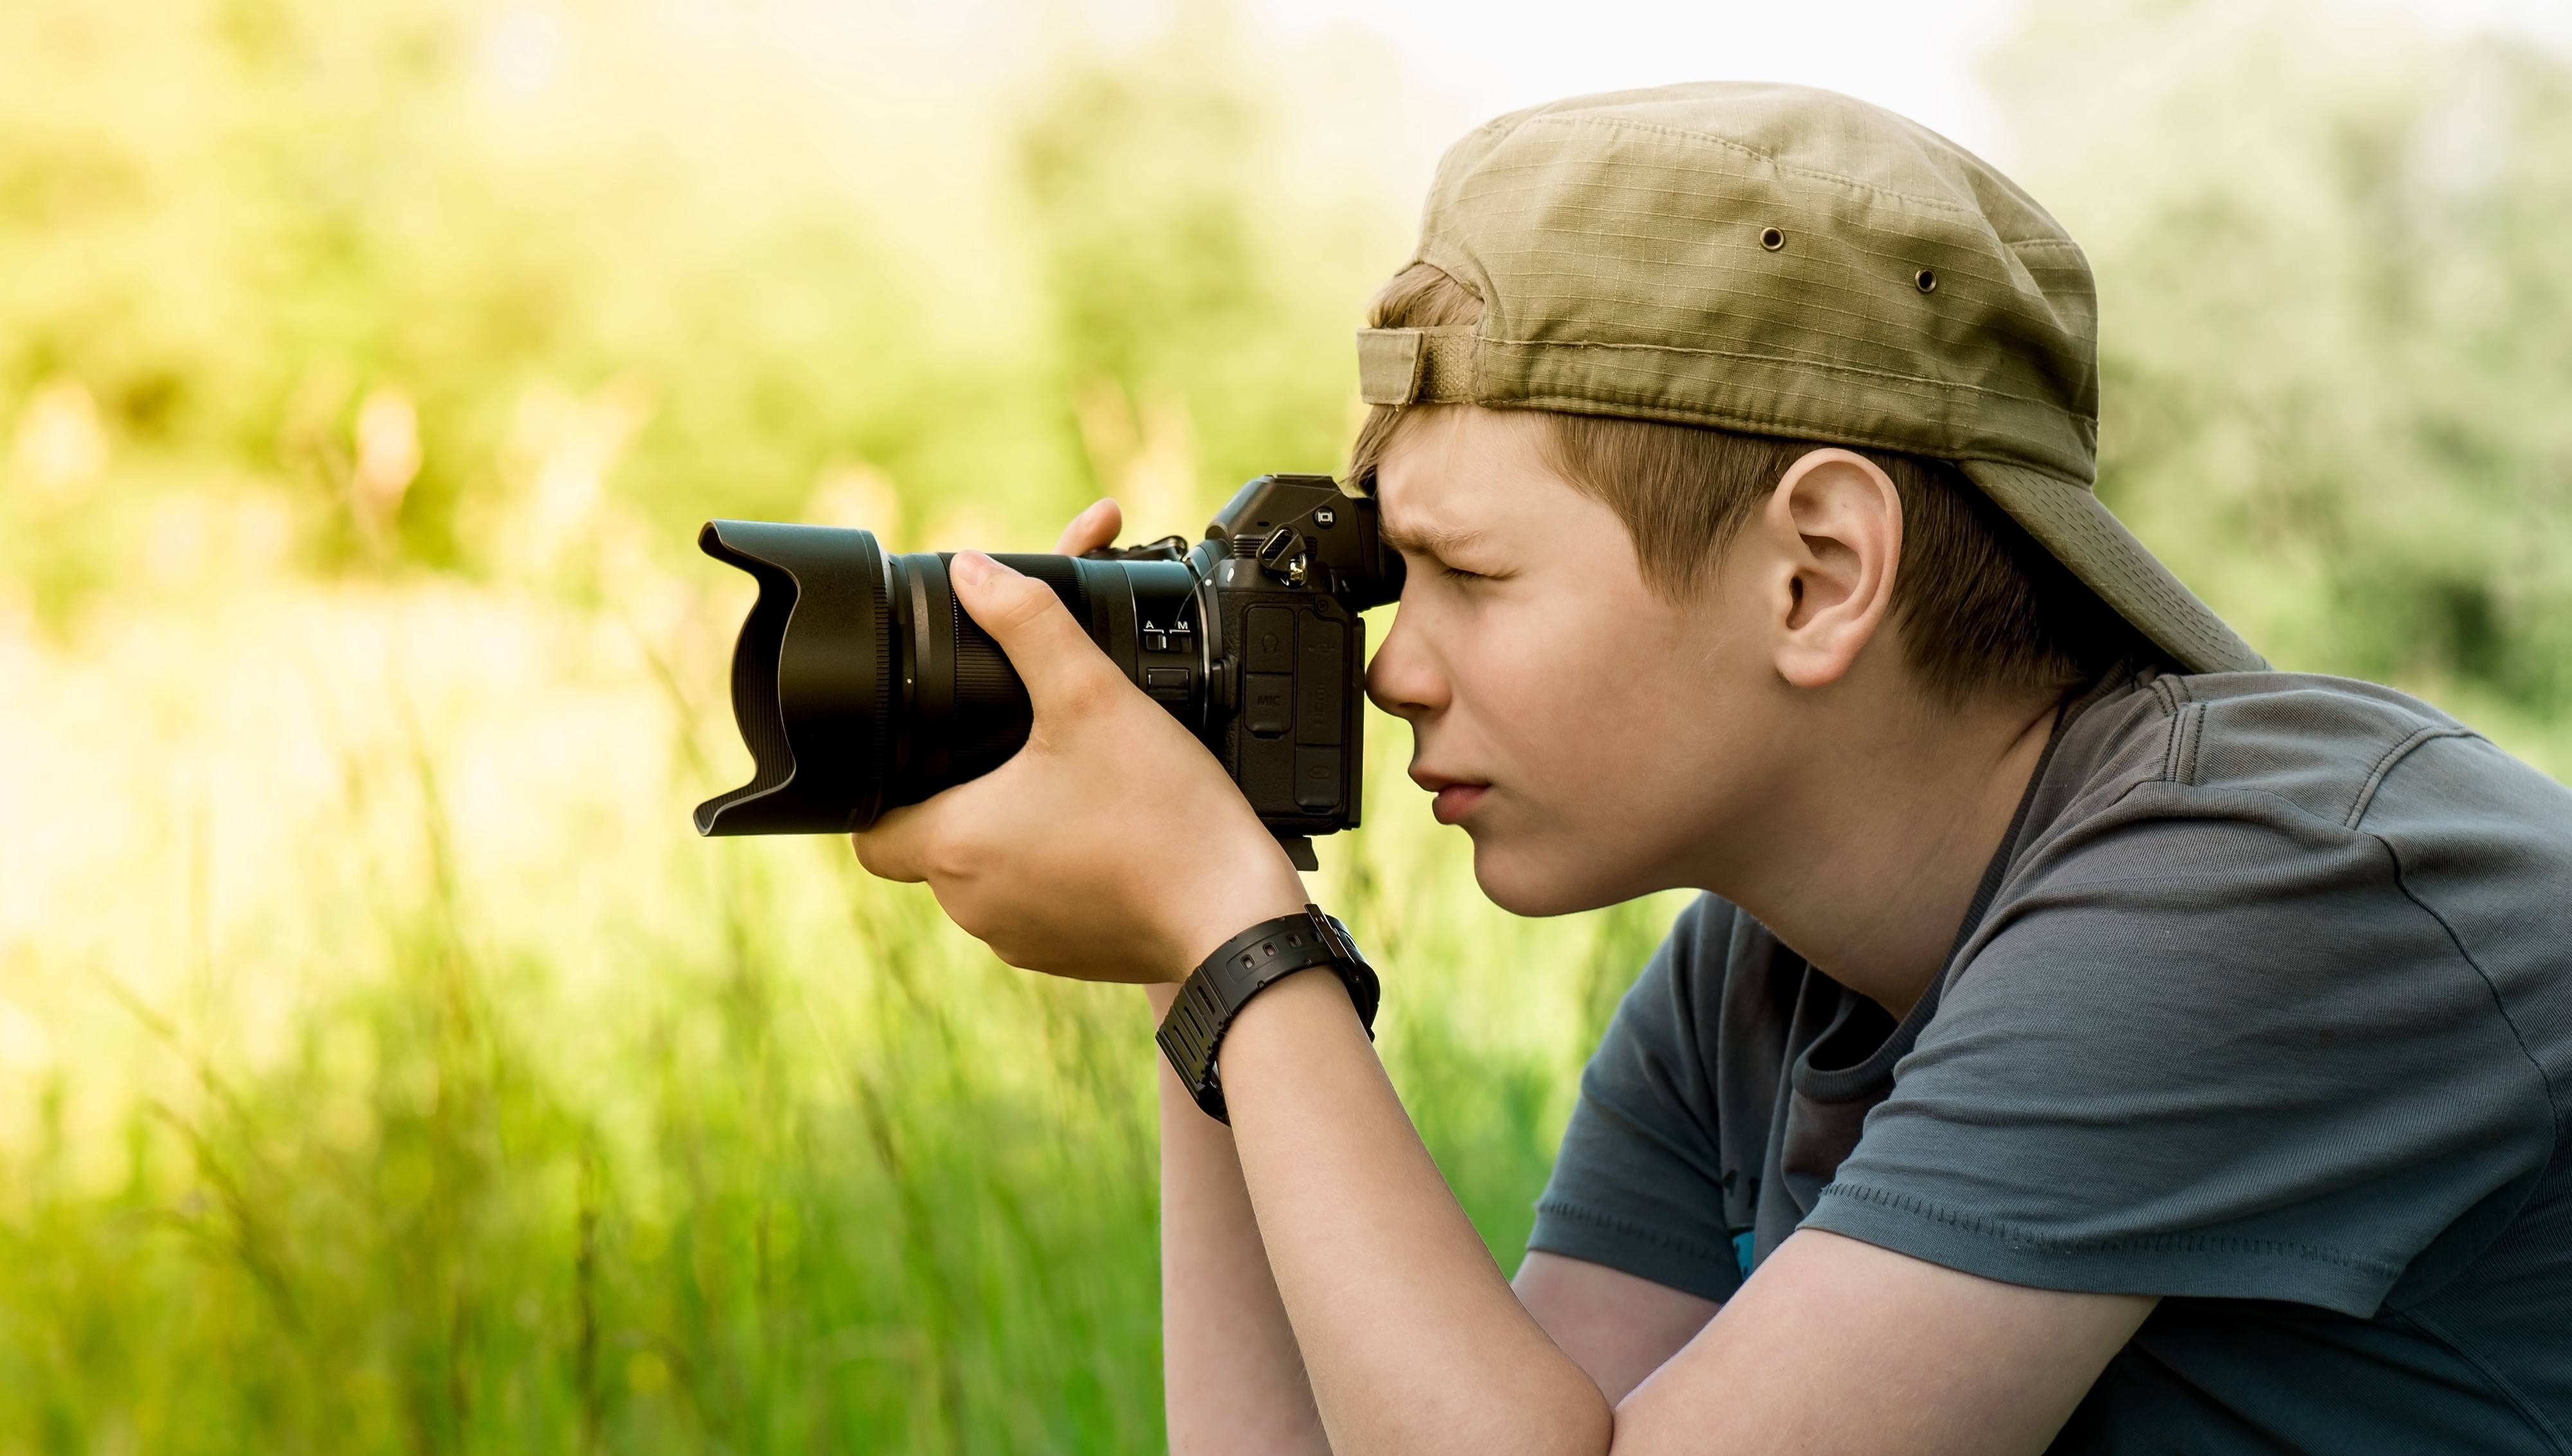 A young man takes photos in a meadow.